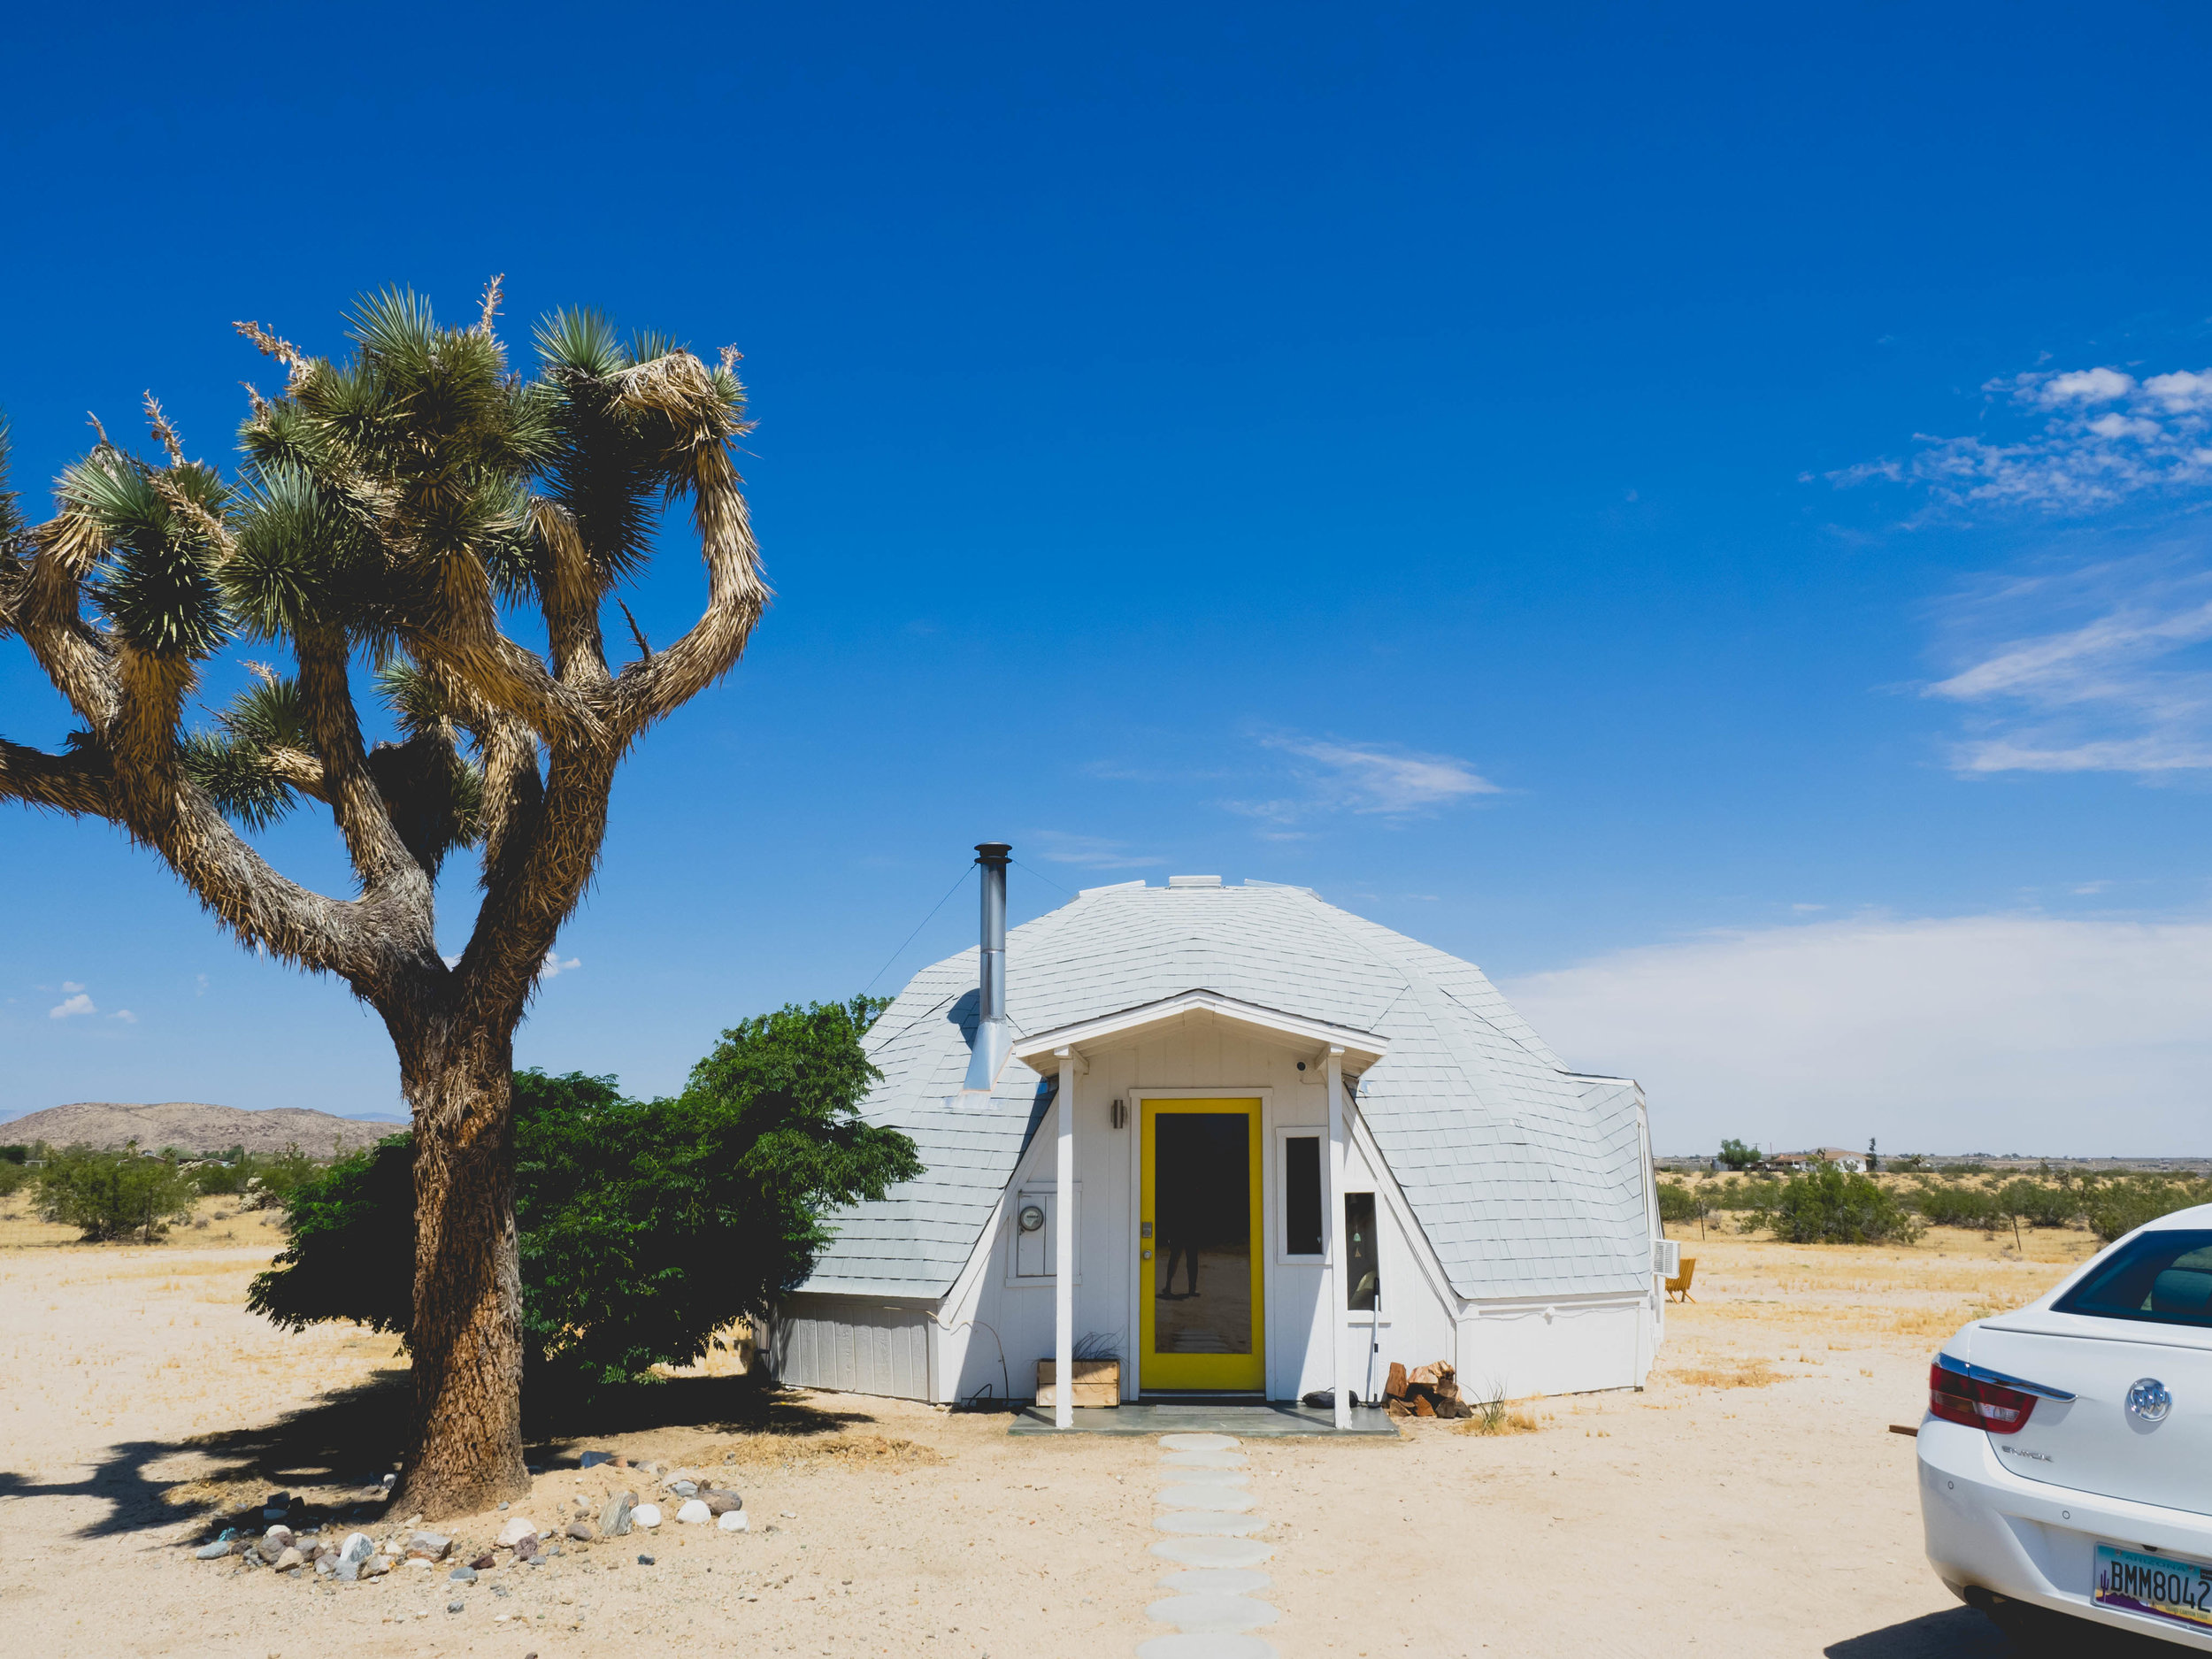 dome in the desert.